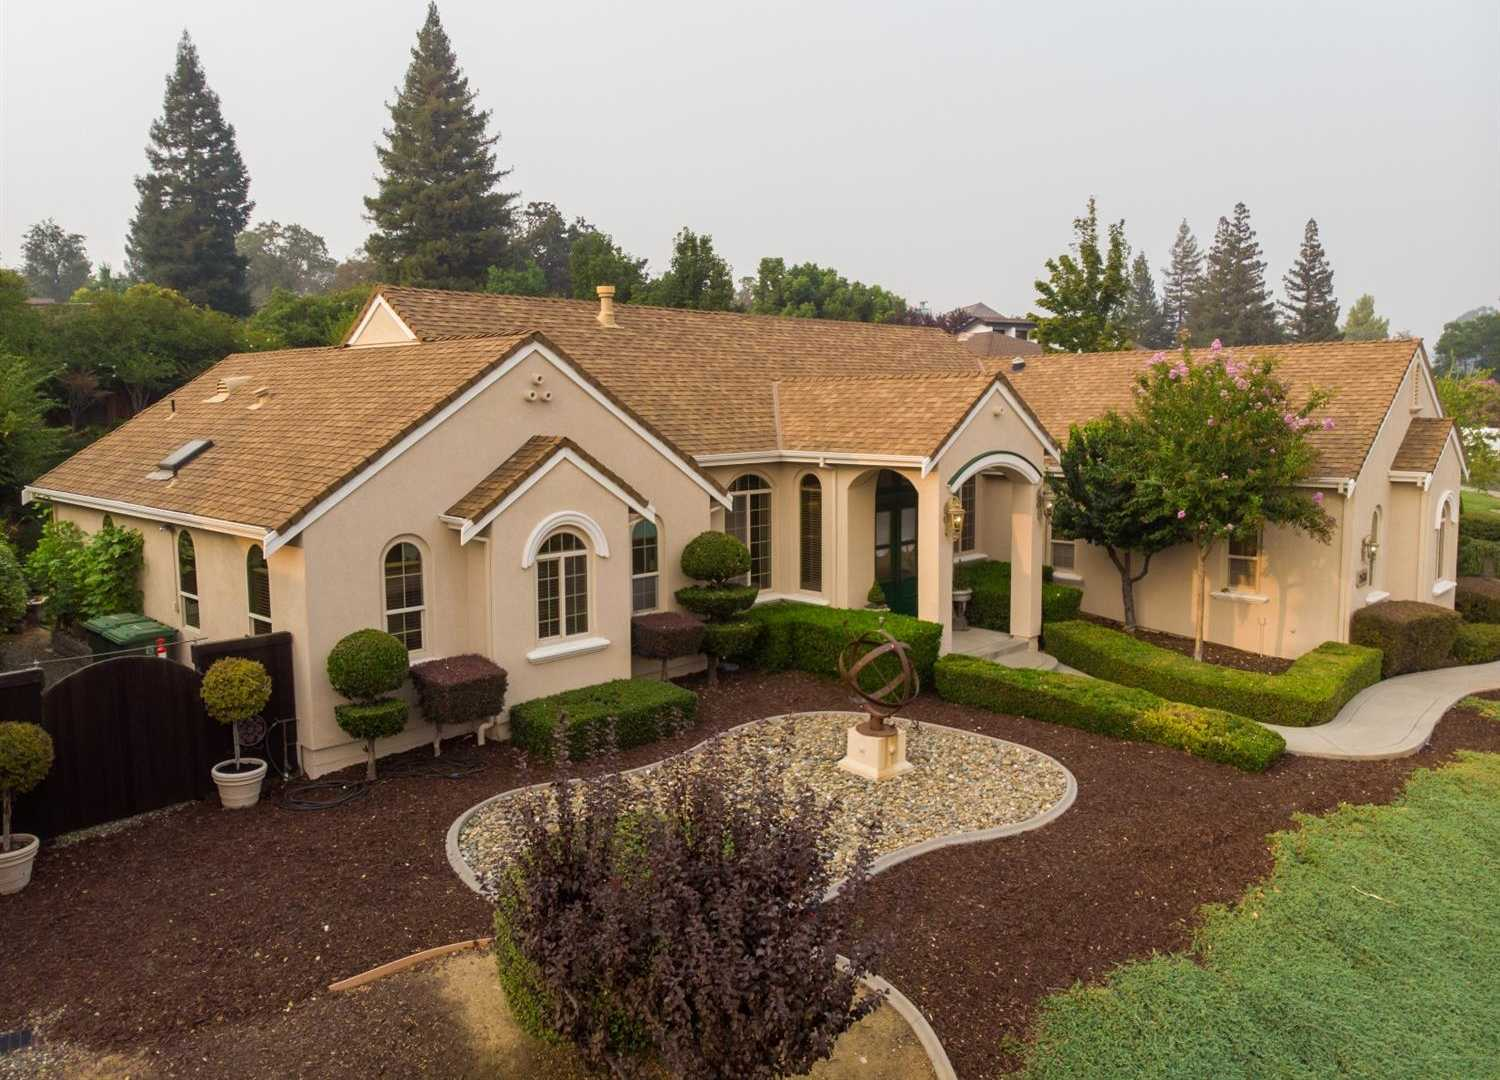 $650,000 - 2Br/2Ba -  for Sale in Cimmaron Hill, Folsom